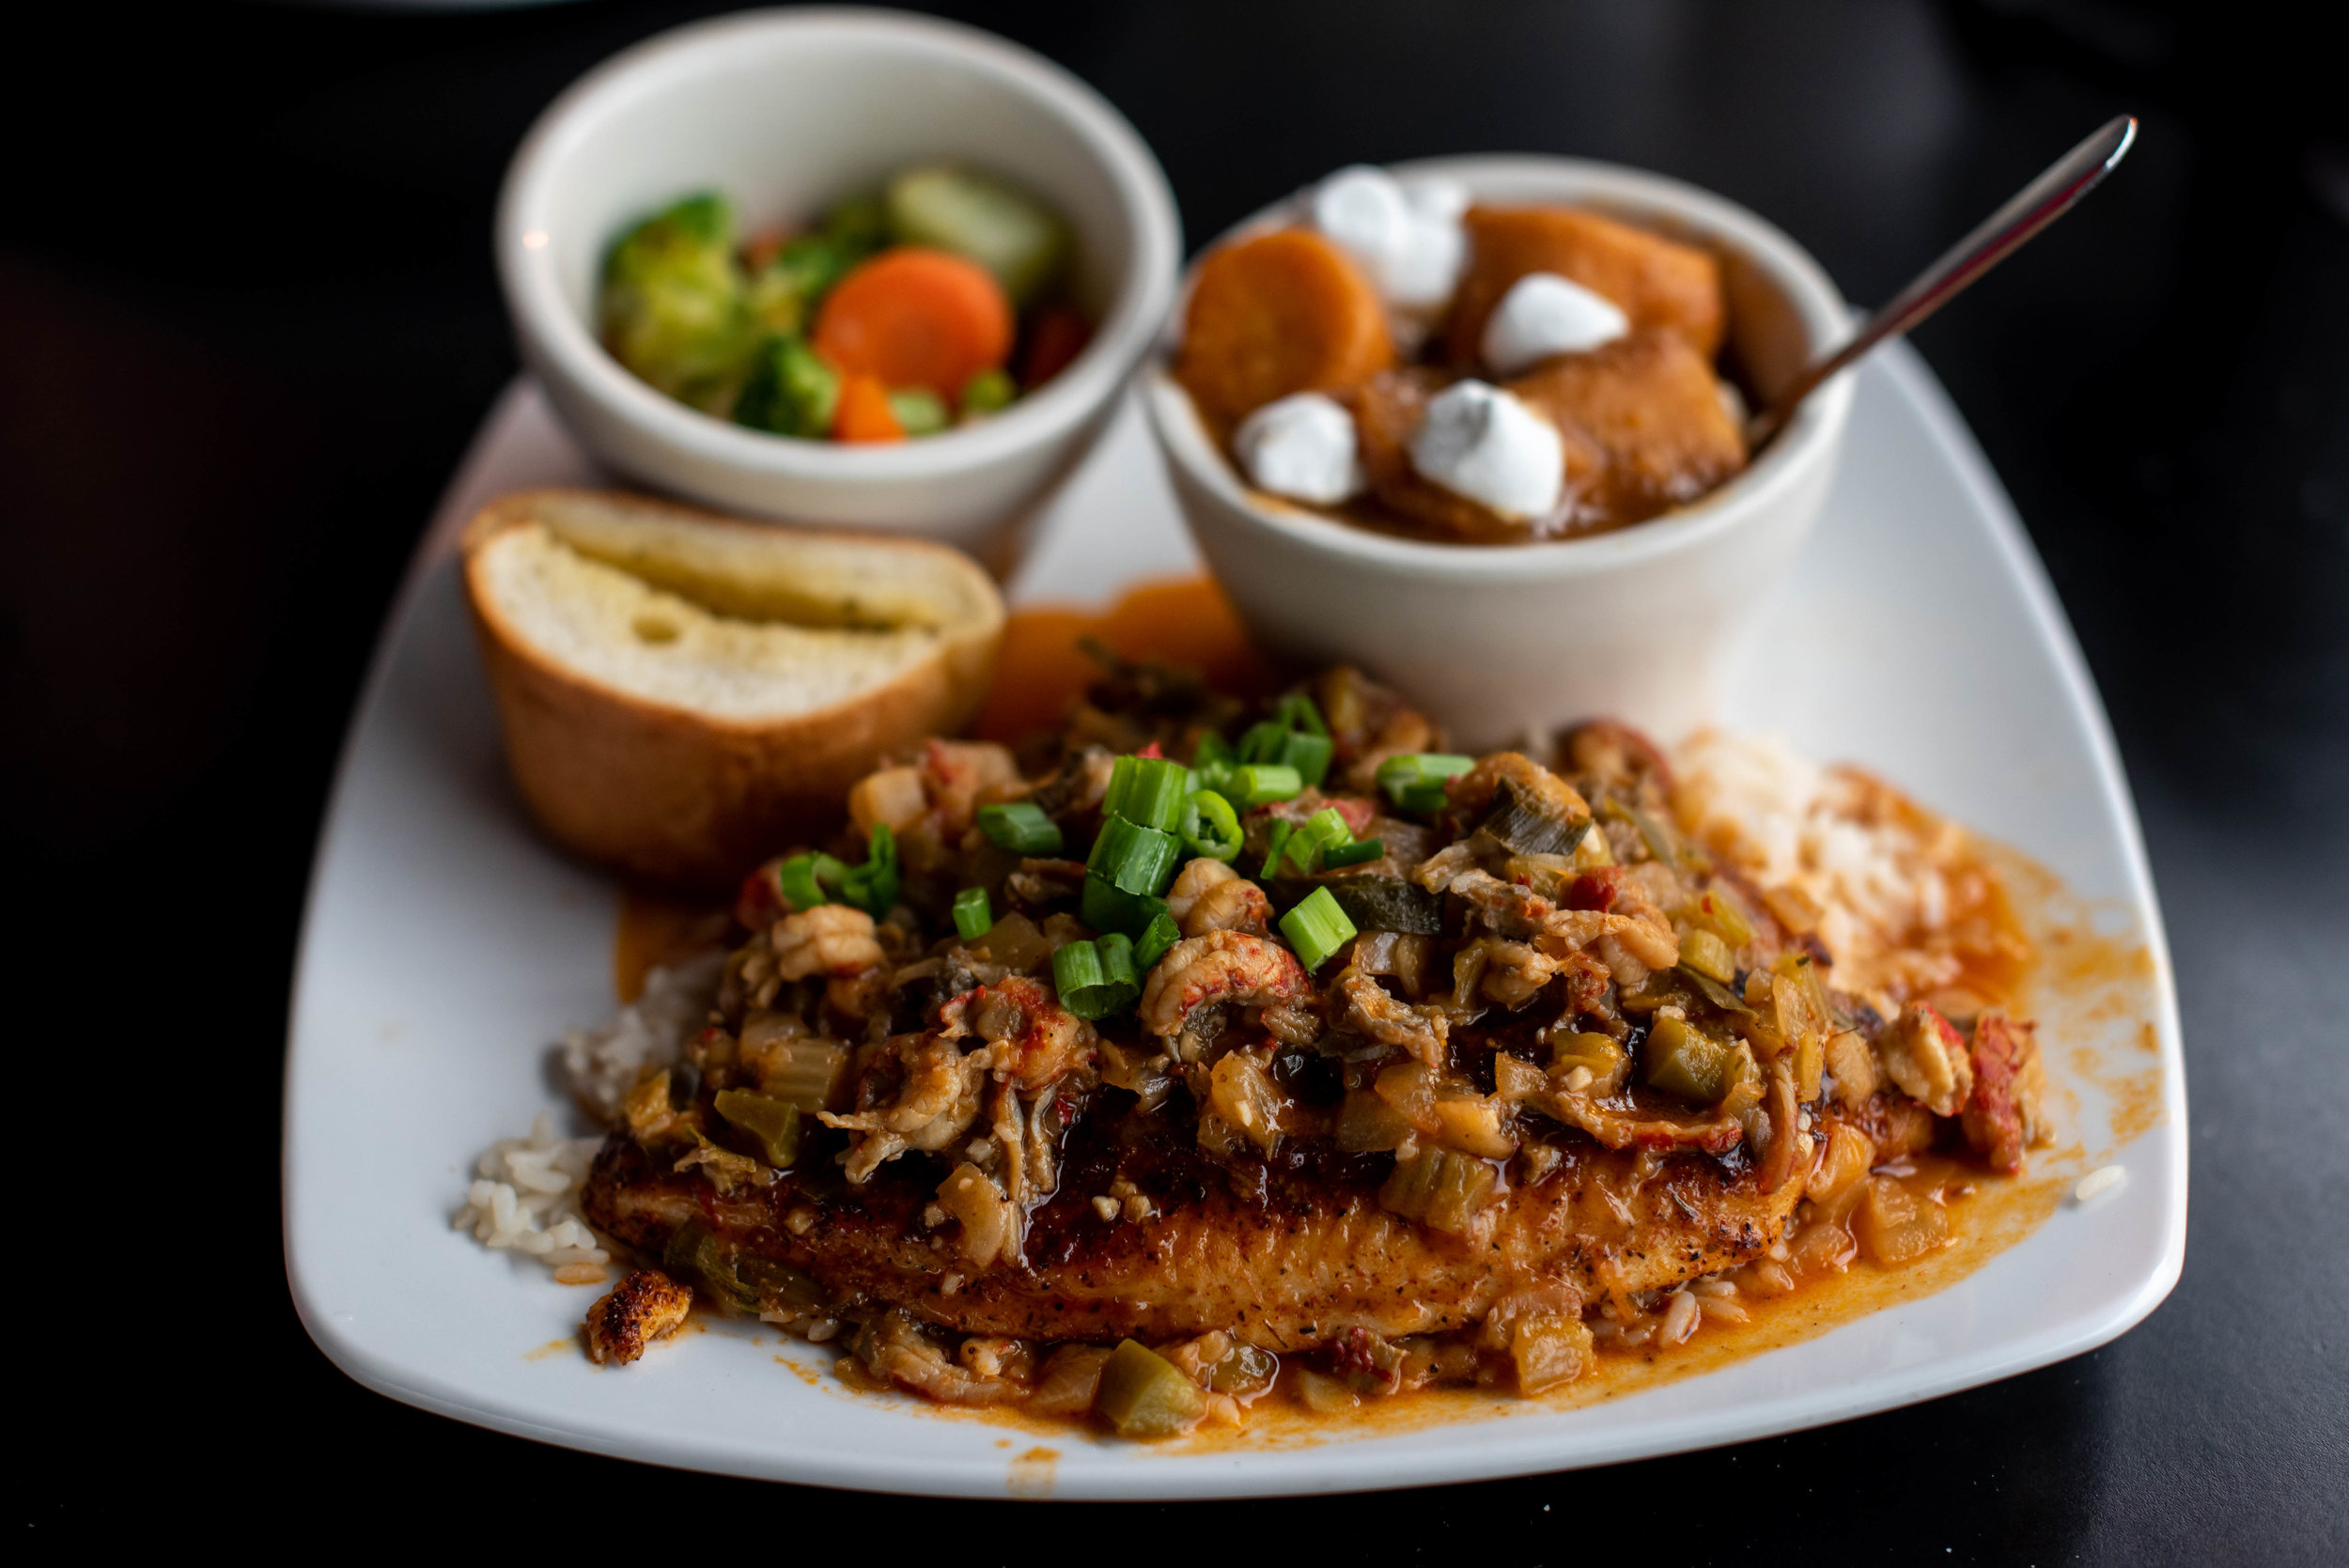 Grilled catfish toped with crawfish Étouffée